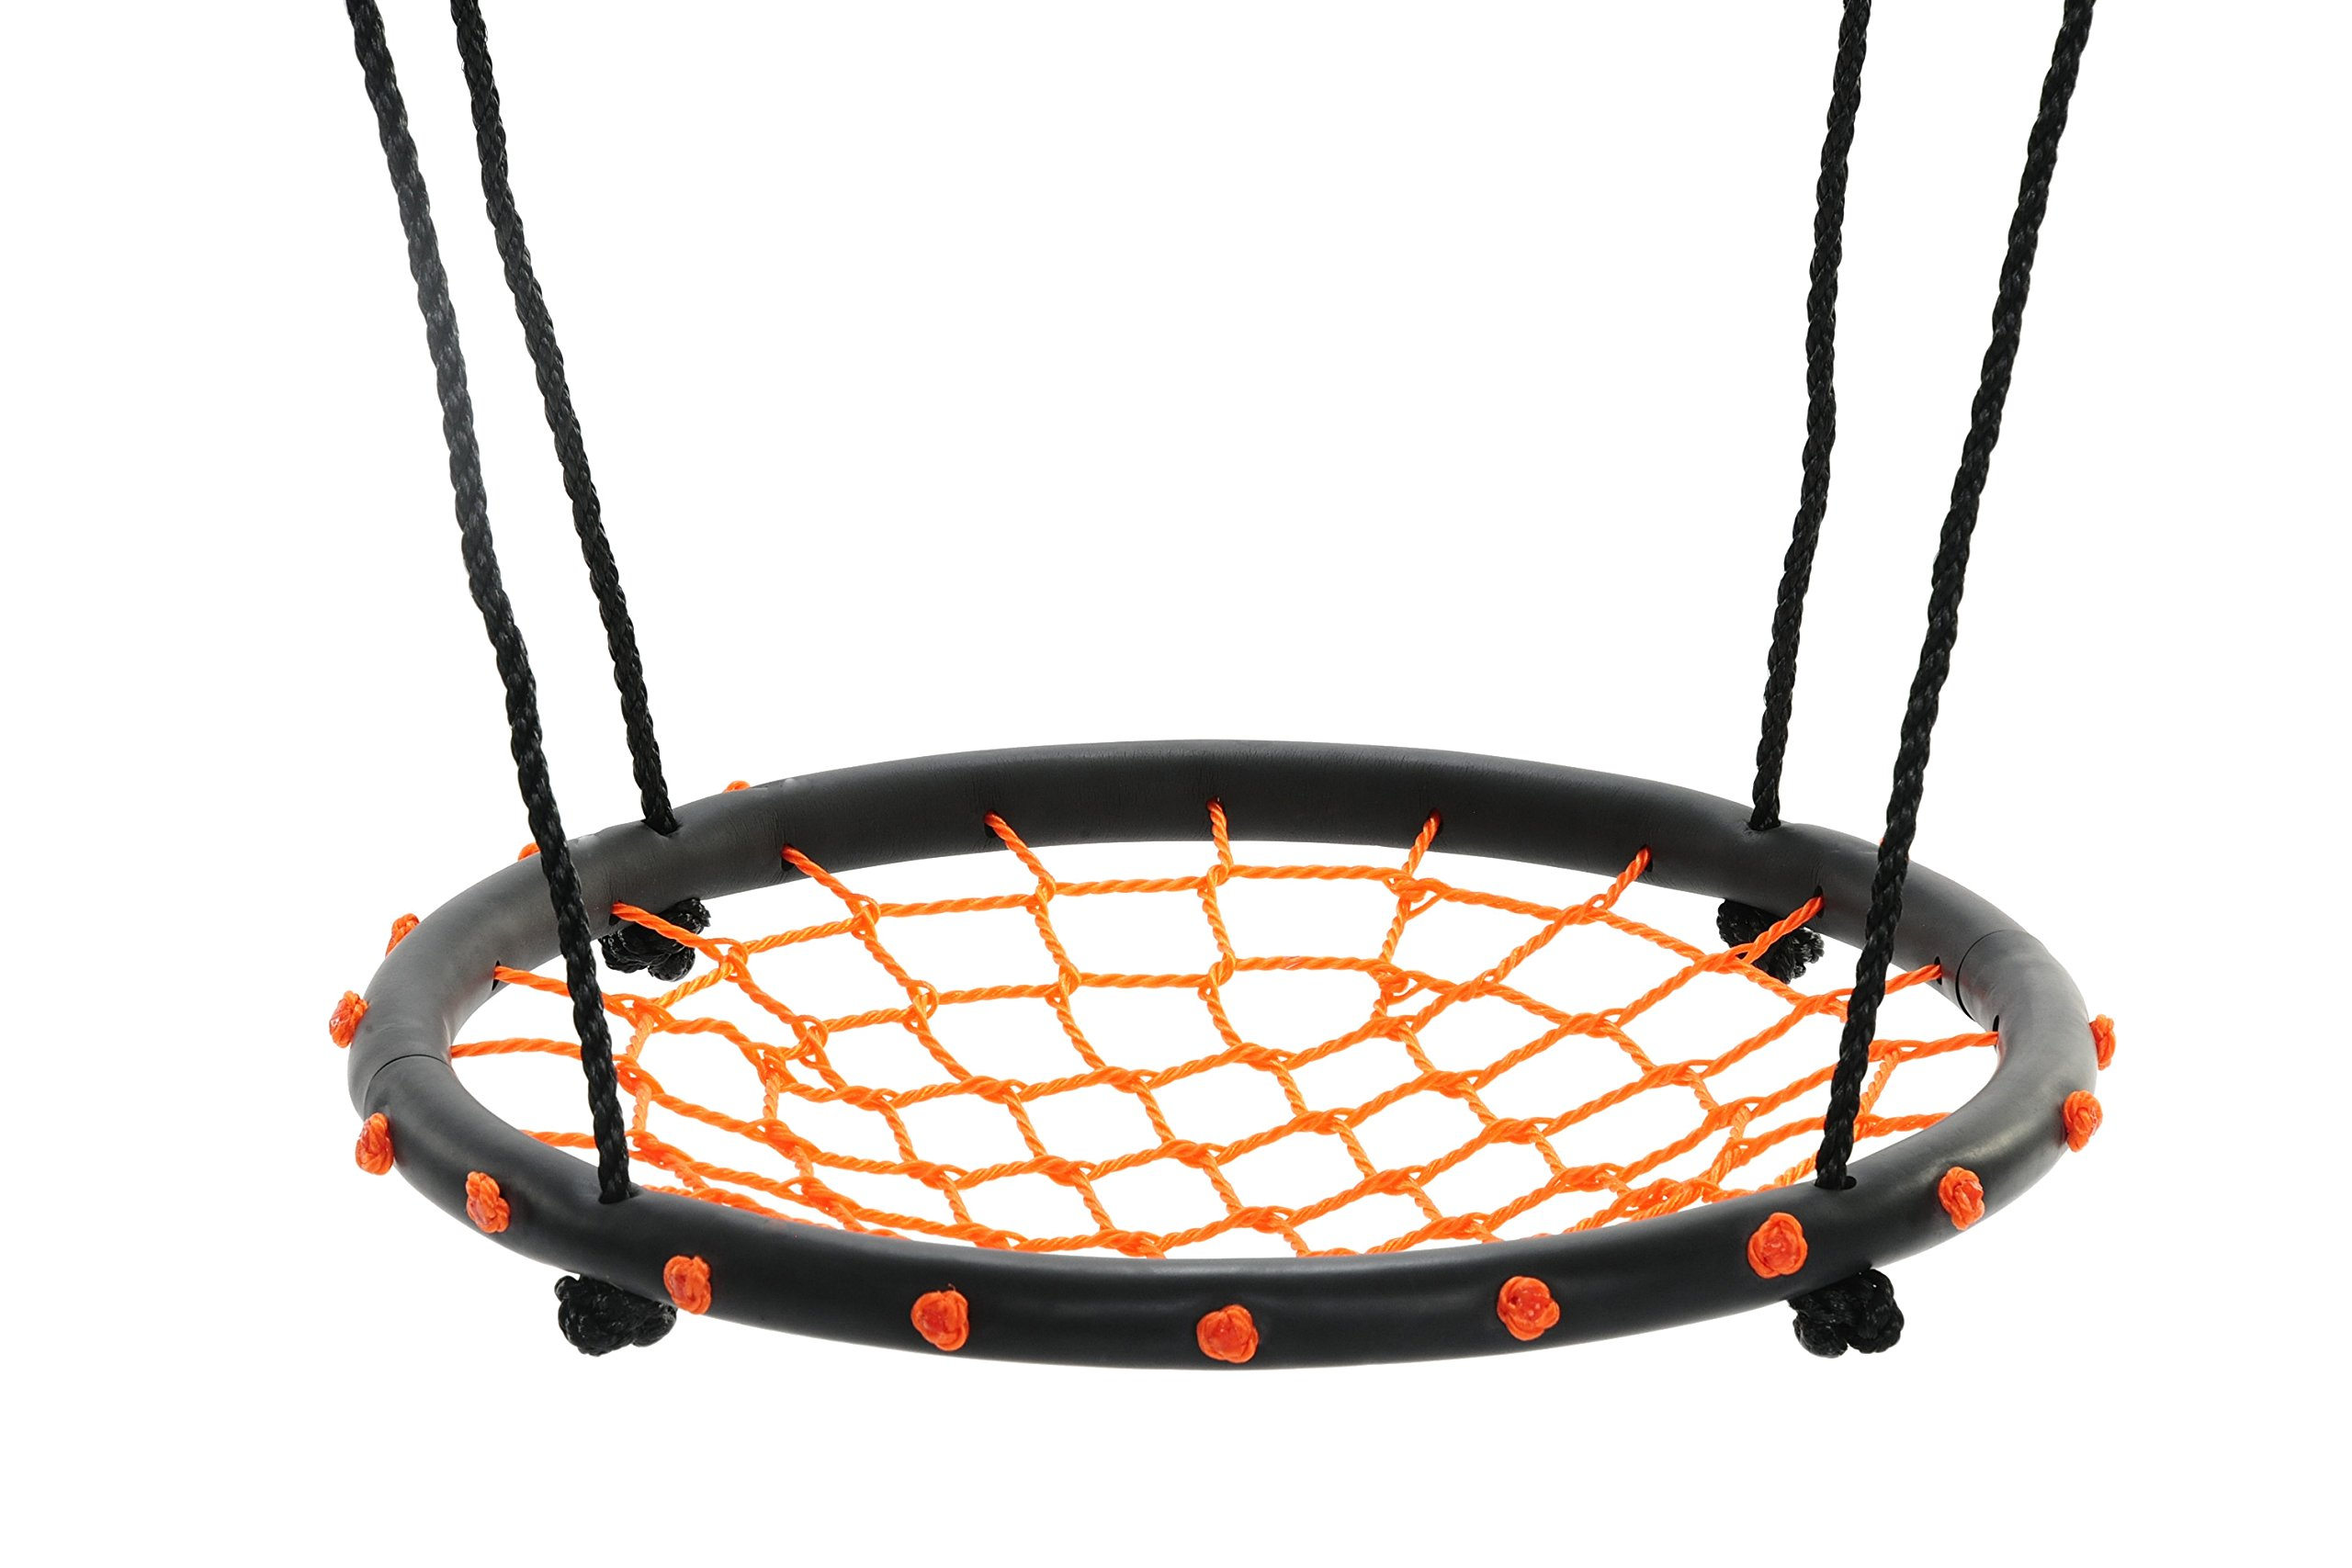 Swinging Monkey Products 24'' Spider Web Playground Swing, Orange – Fun! Easy Install for Swing Set or Tree